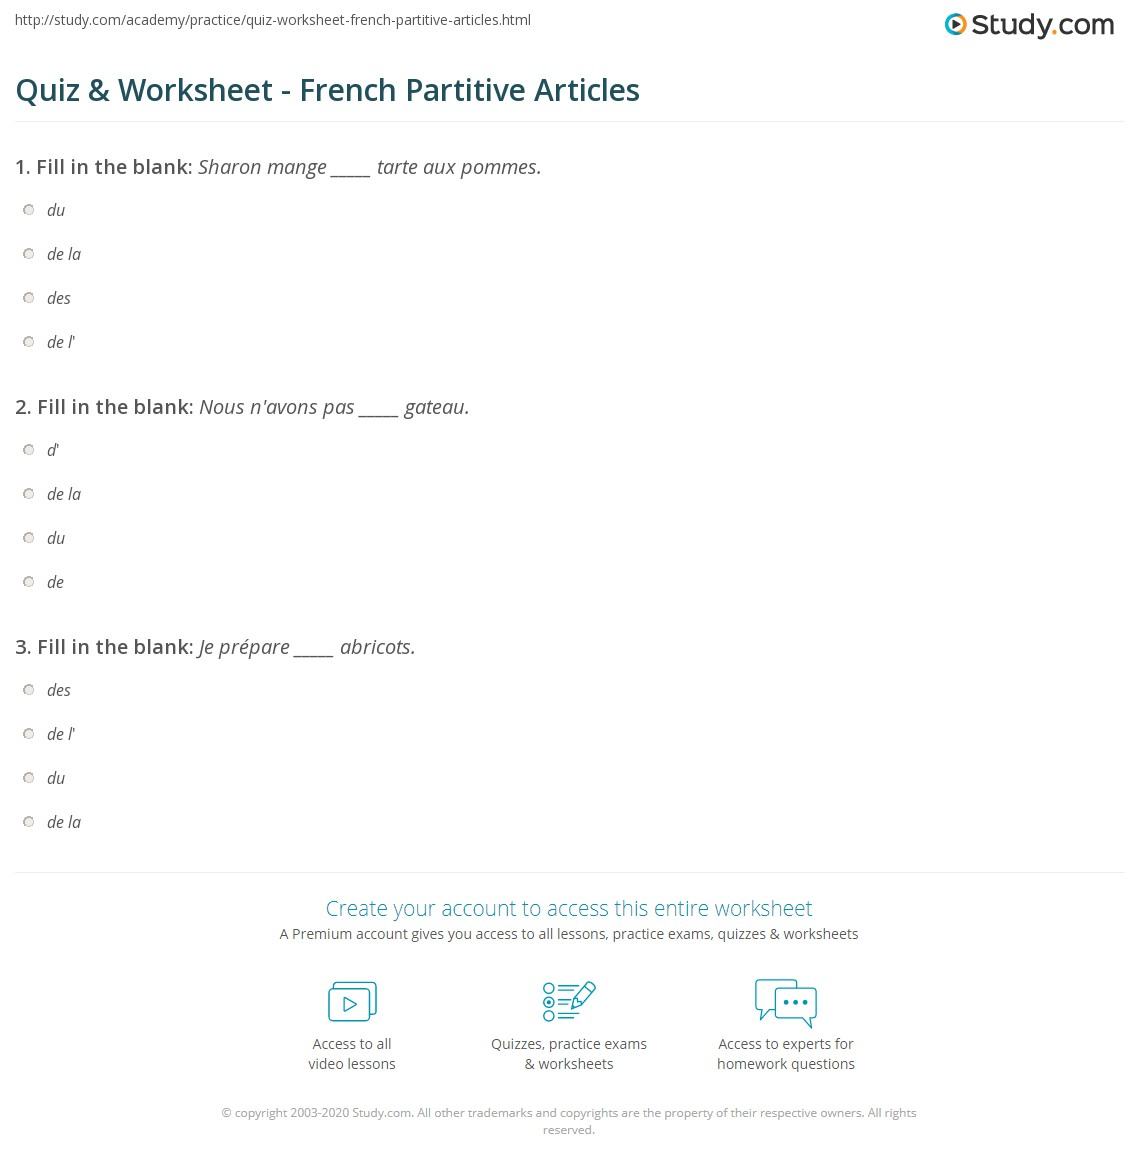 Quiz Worksheet French Partitive Articles – Articles a an the Worksheets